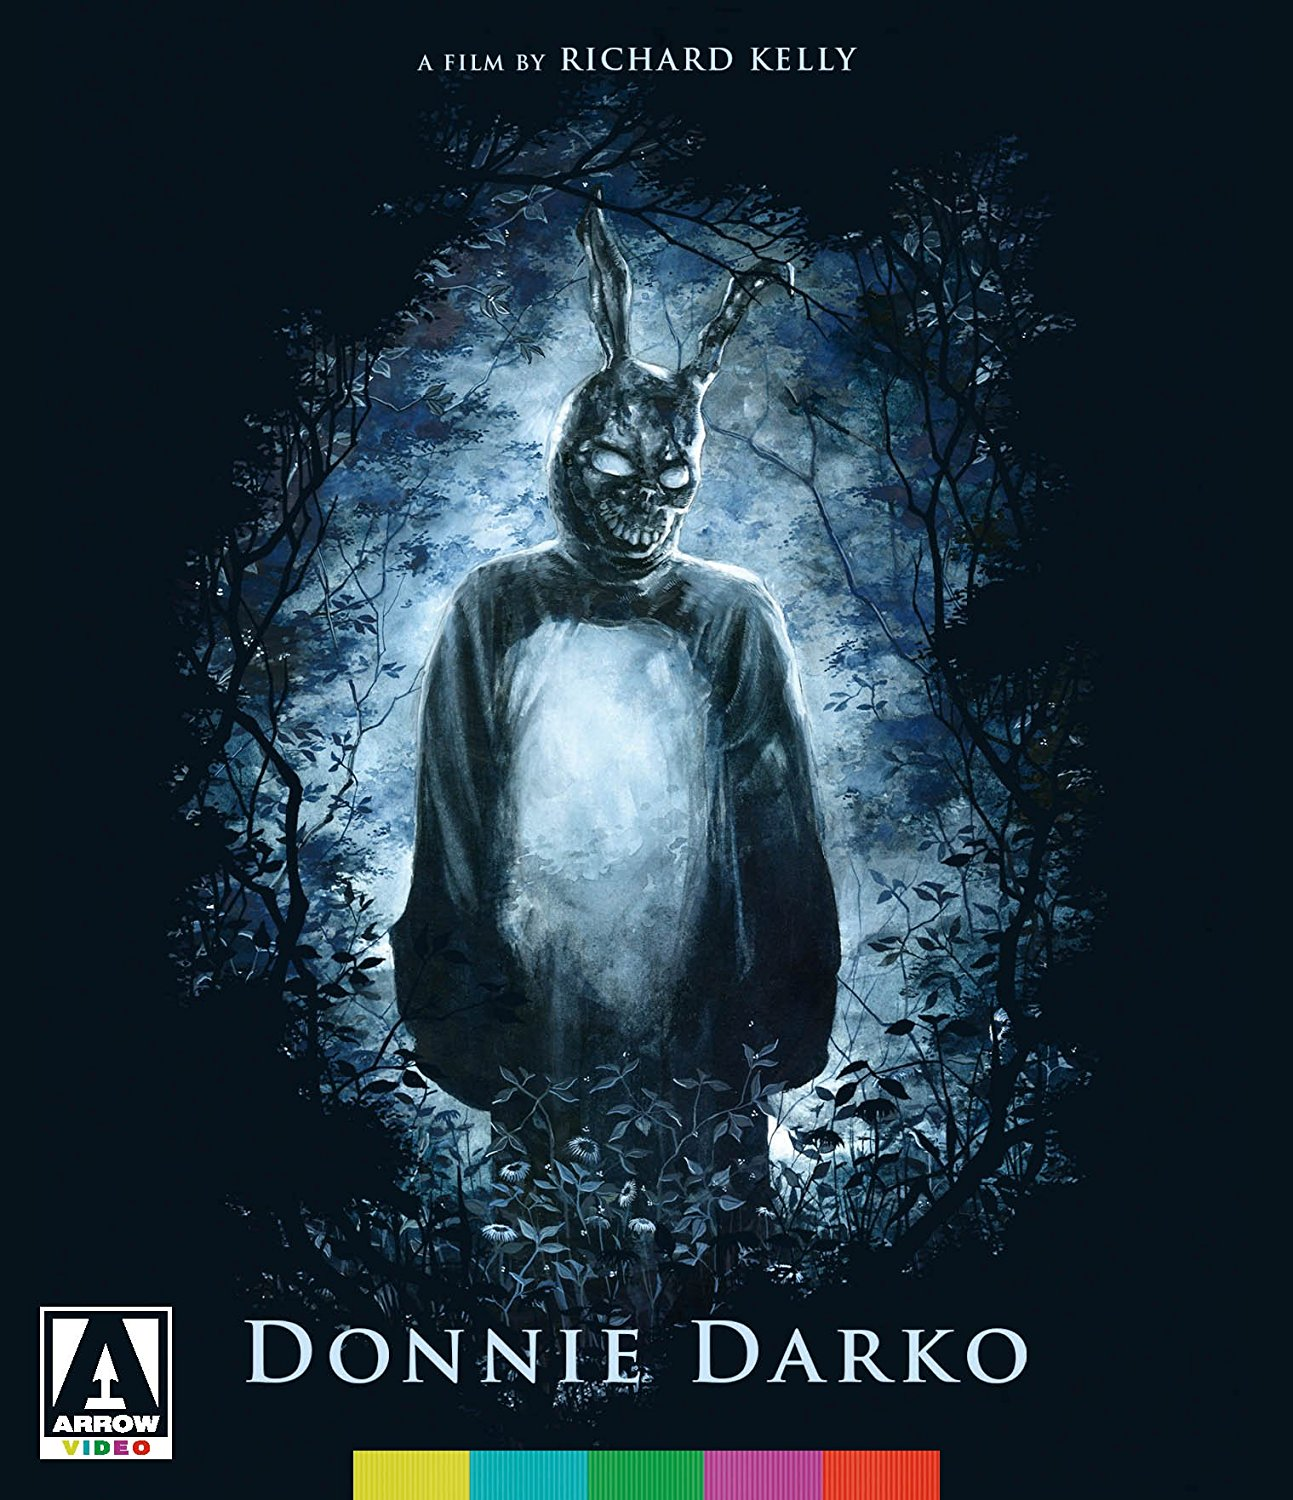 Donnie Darko: Director's Cut review: an excellent complement to the original